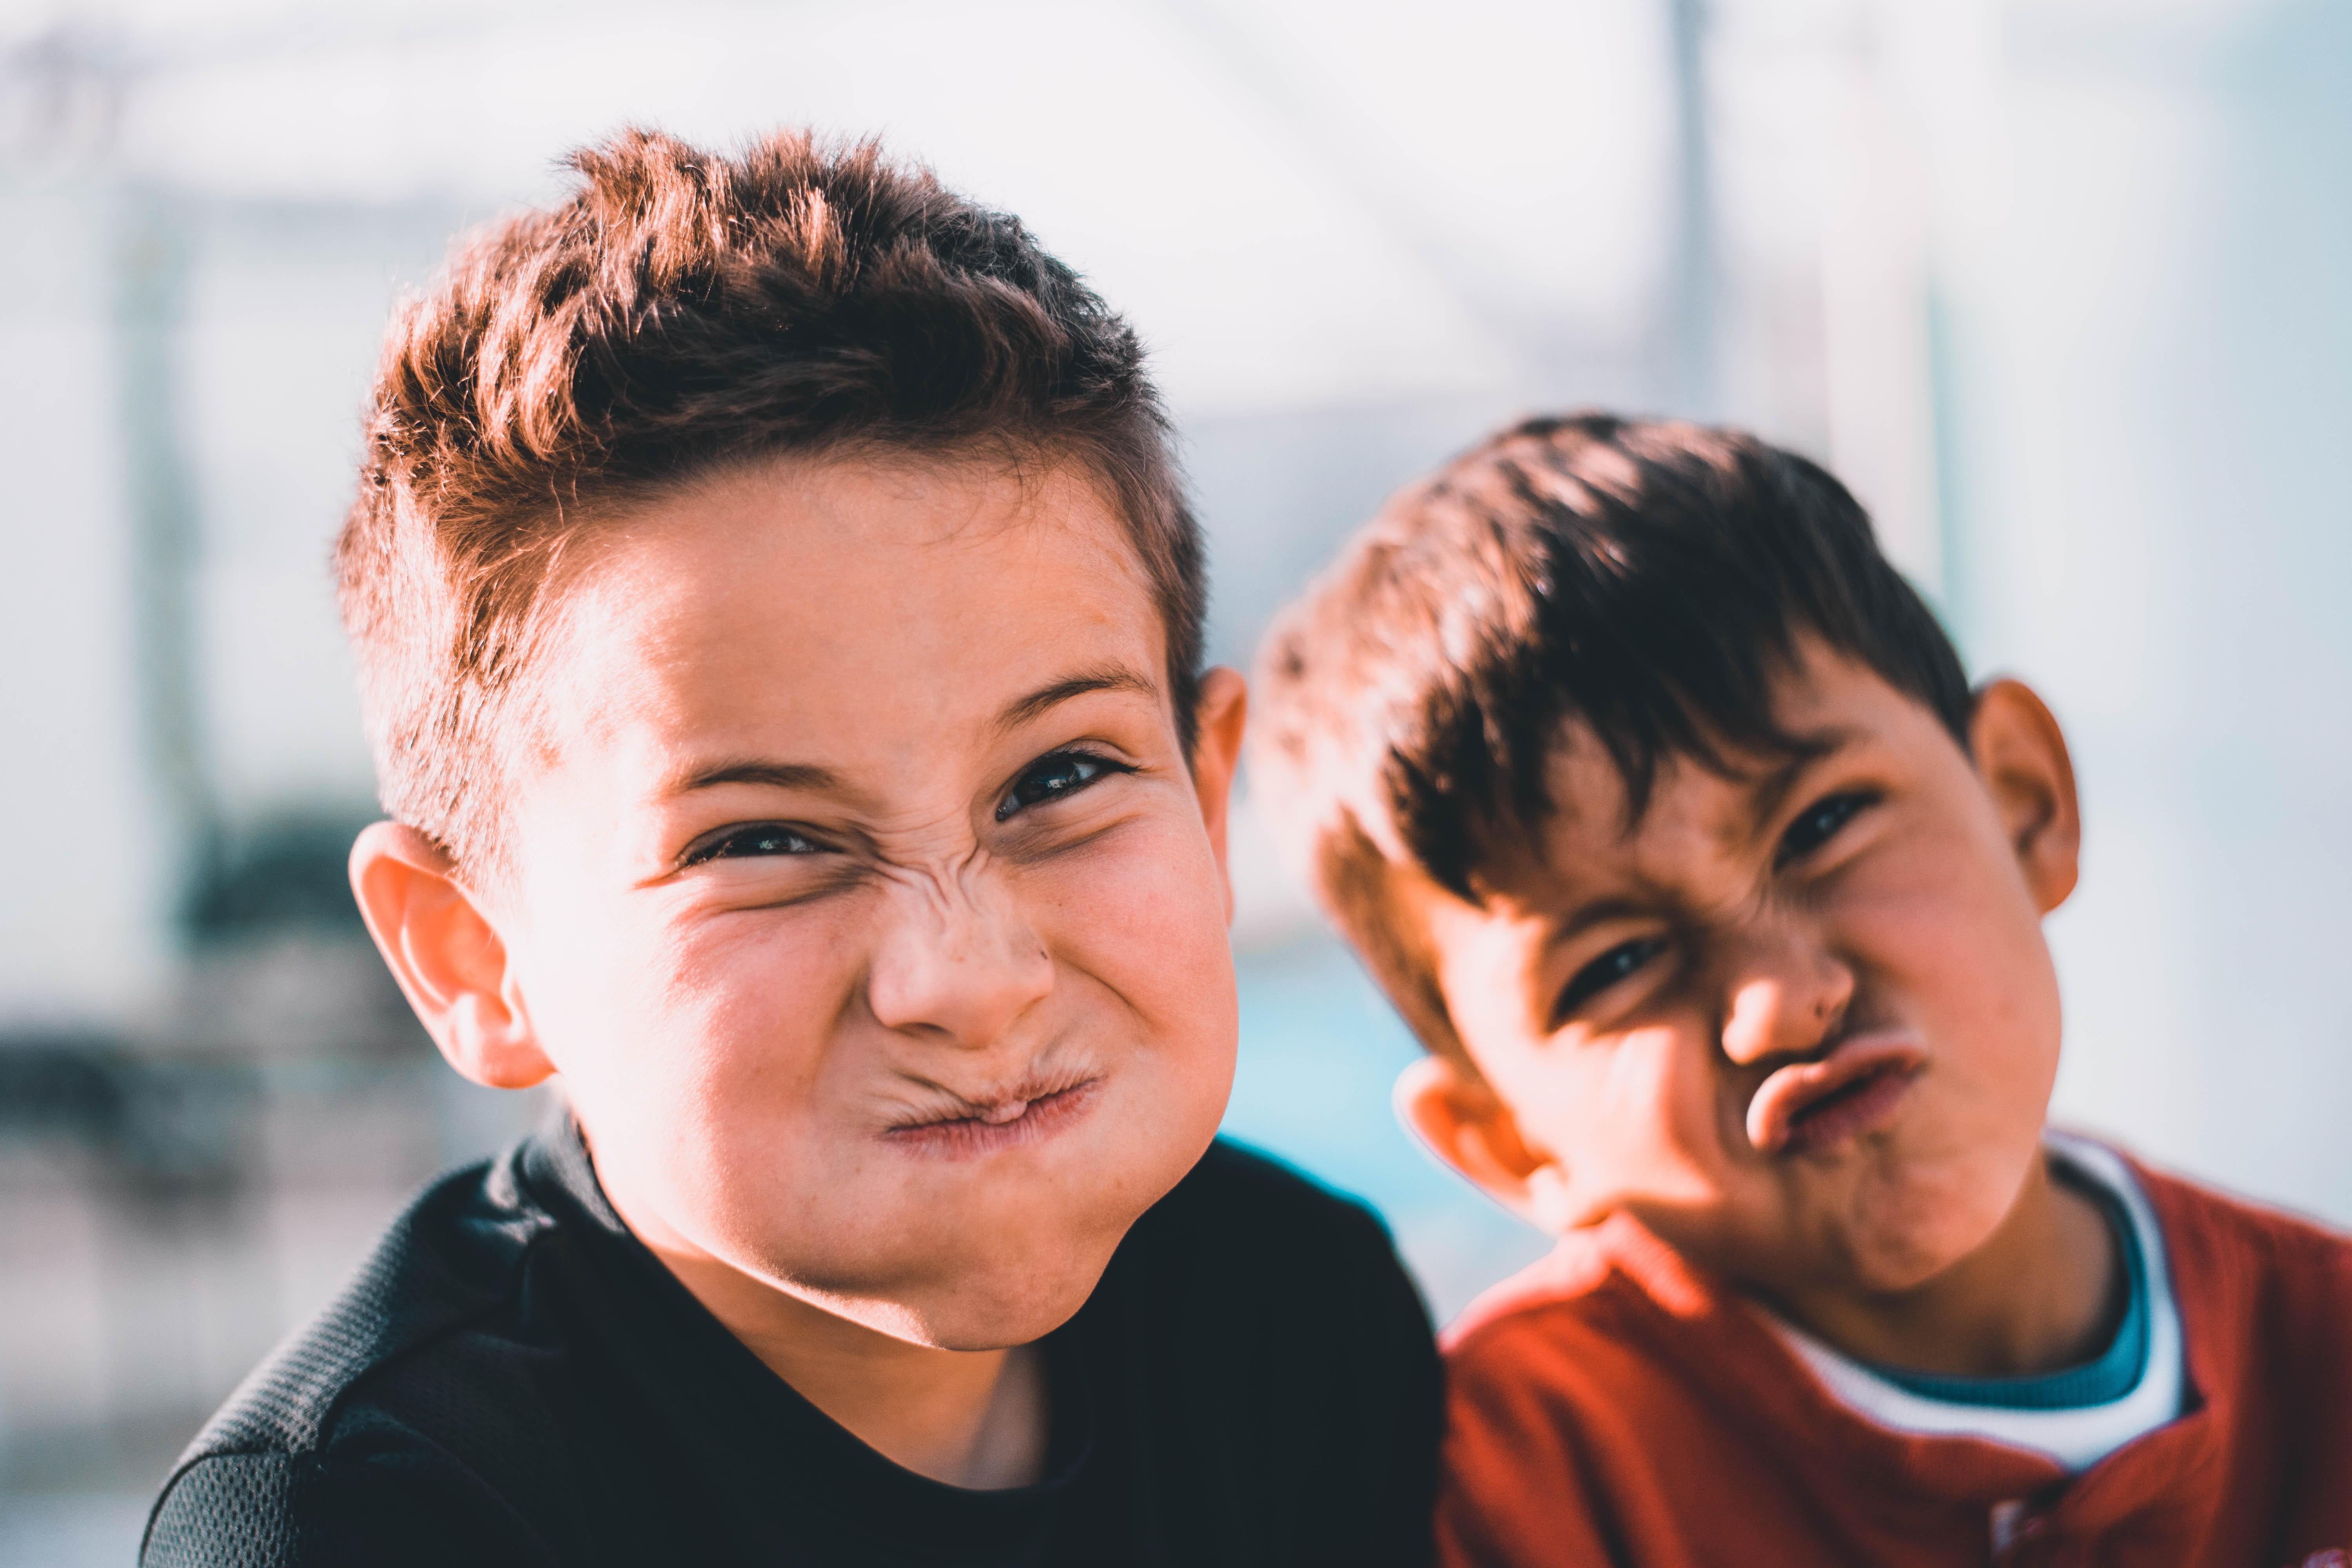 shallow focus photography of two boys doing wacky faces